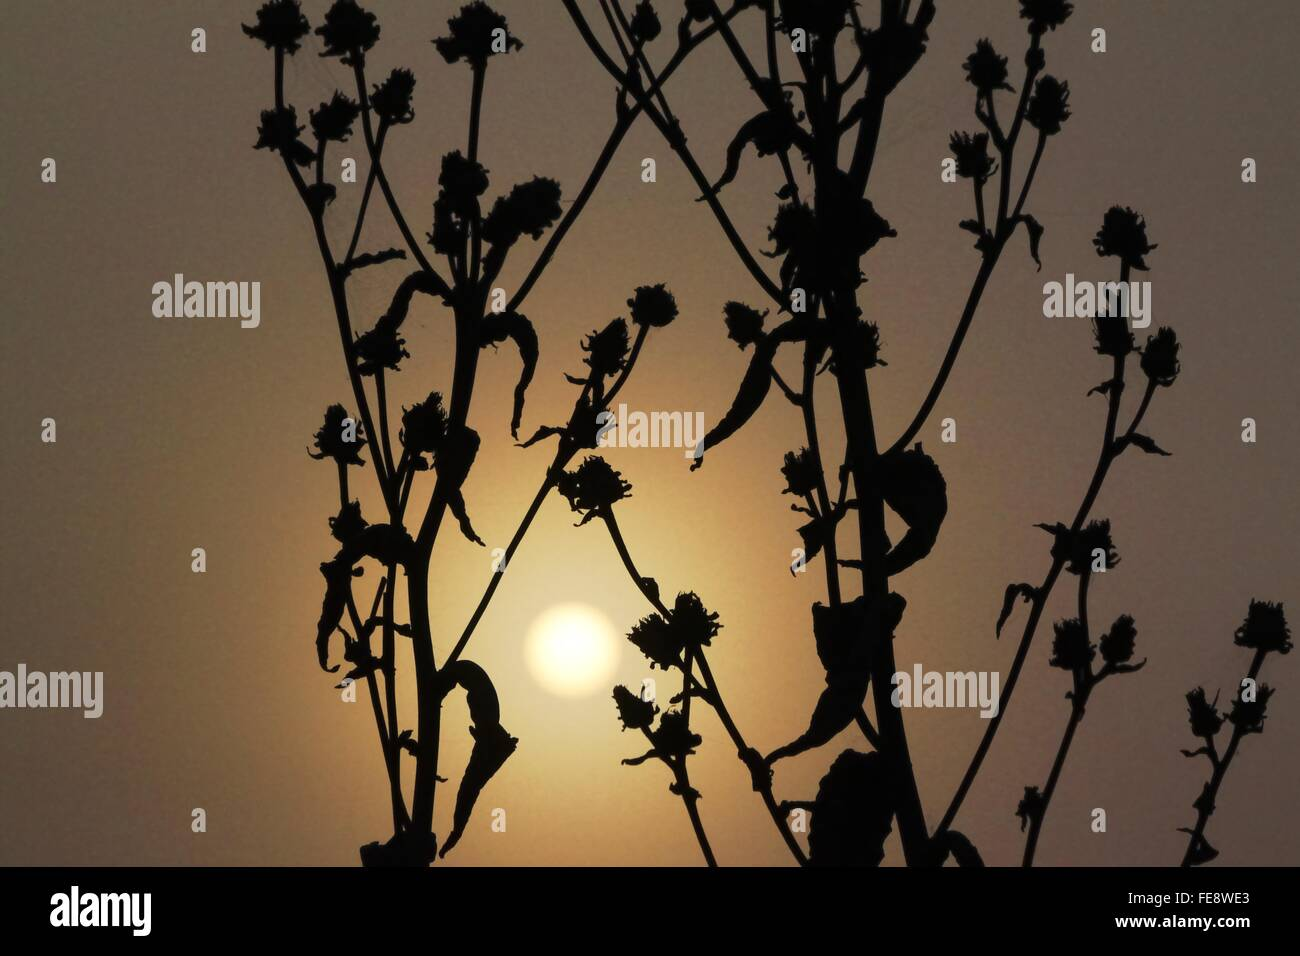 Silhouette Dead Plants During Sunset - Stock Image